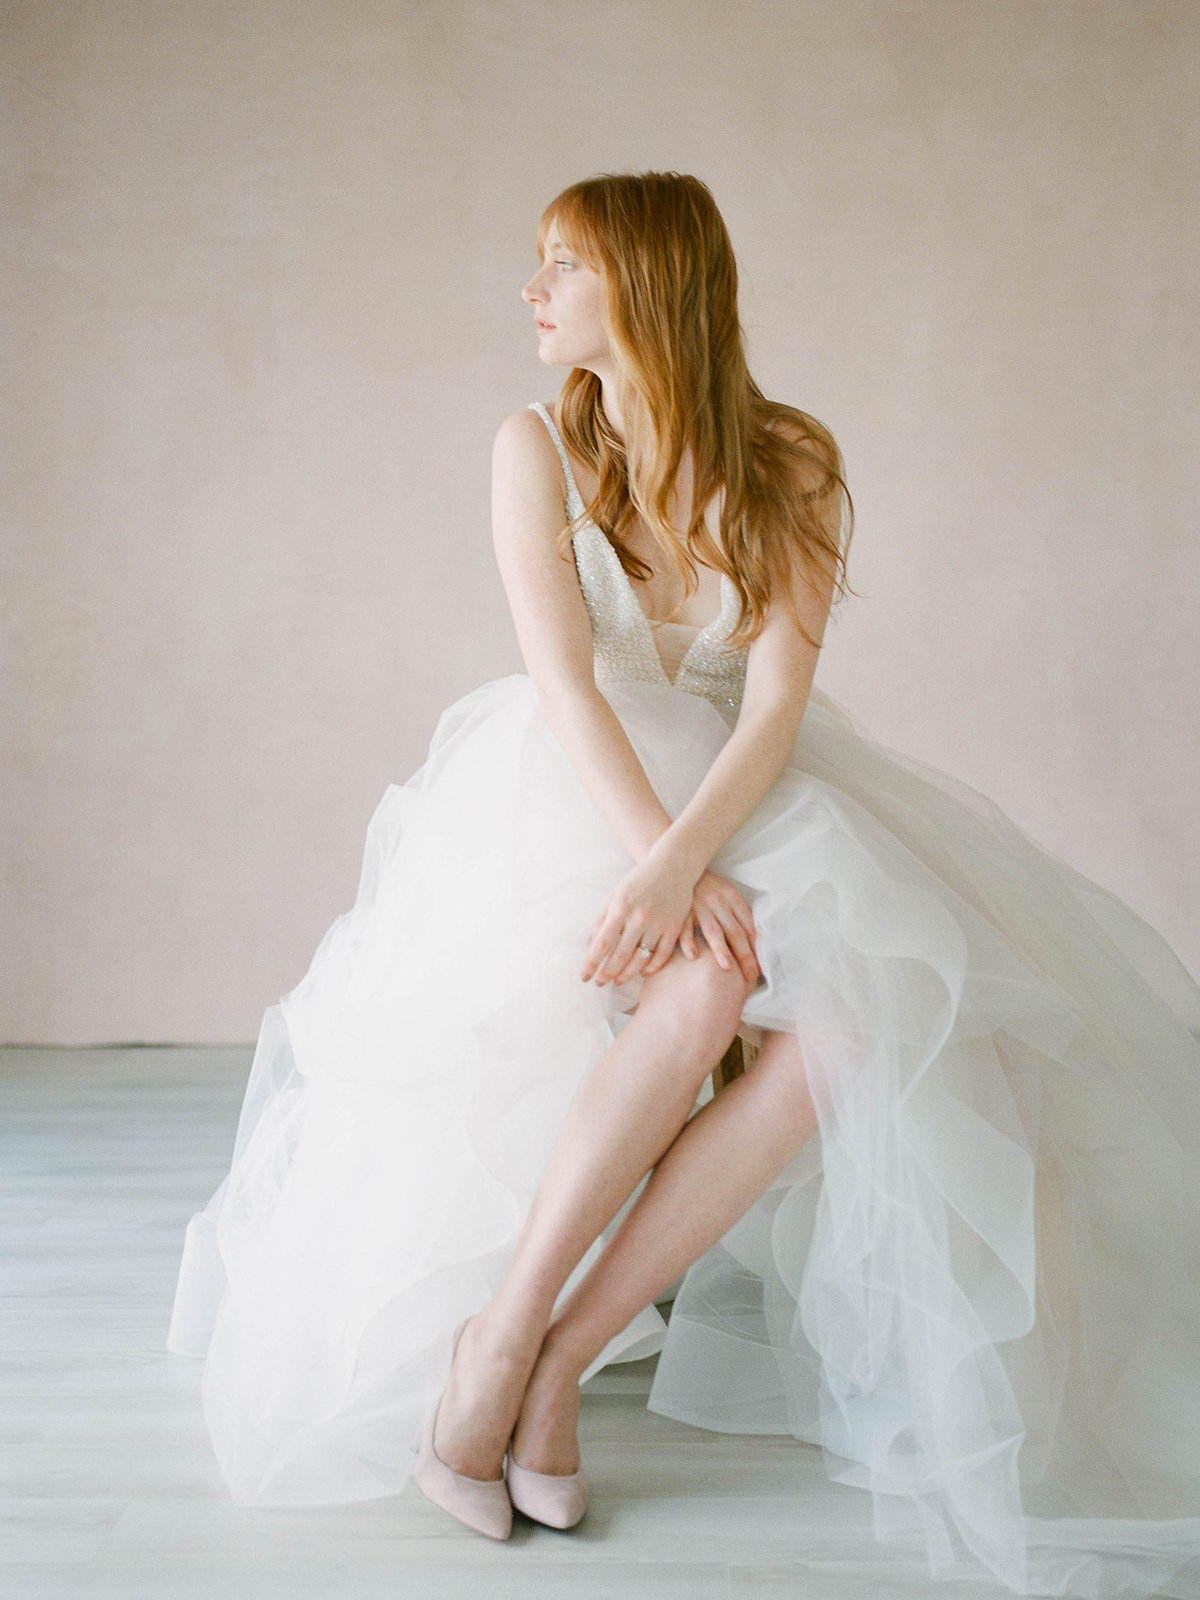 Fine Art Bridal Portraits - Sarah Sunstrom Photography - Film Wedding Photographer - 6